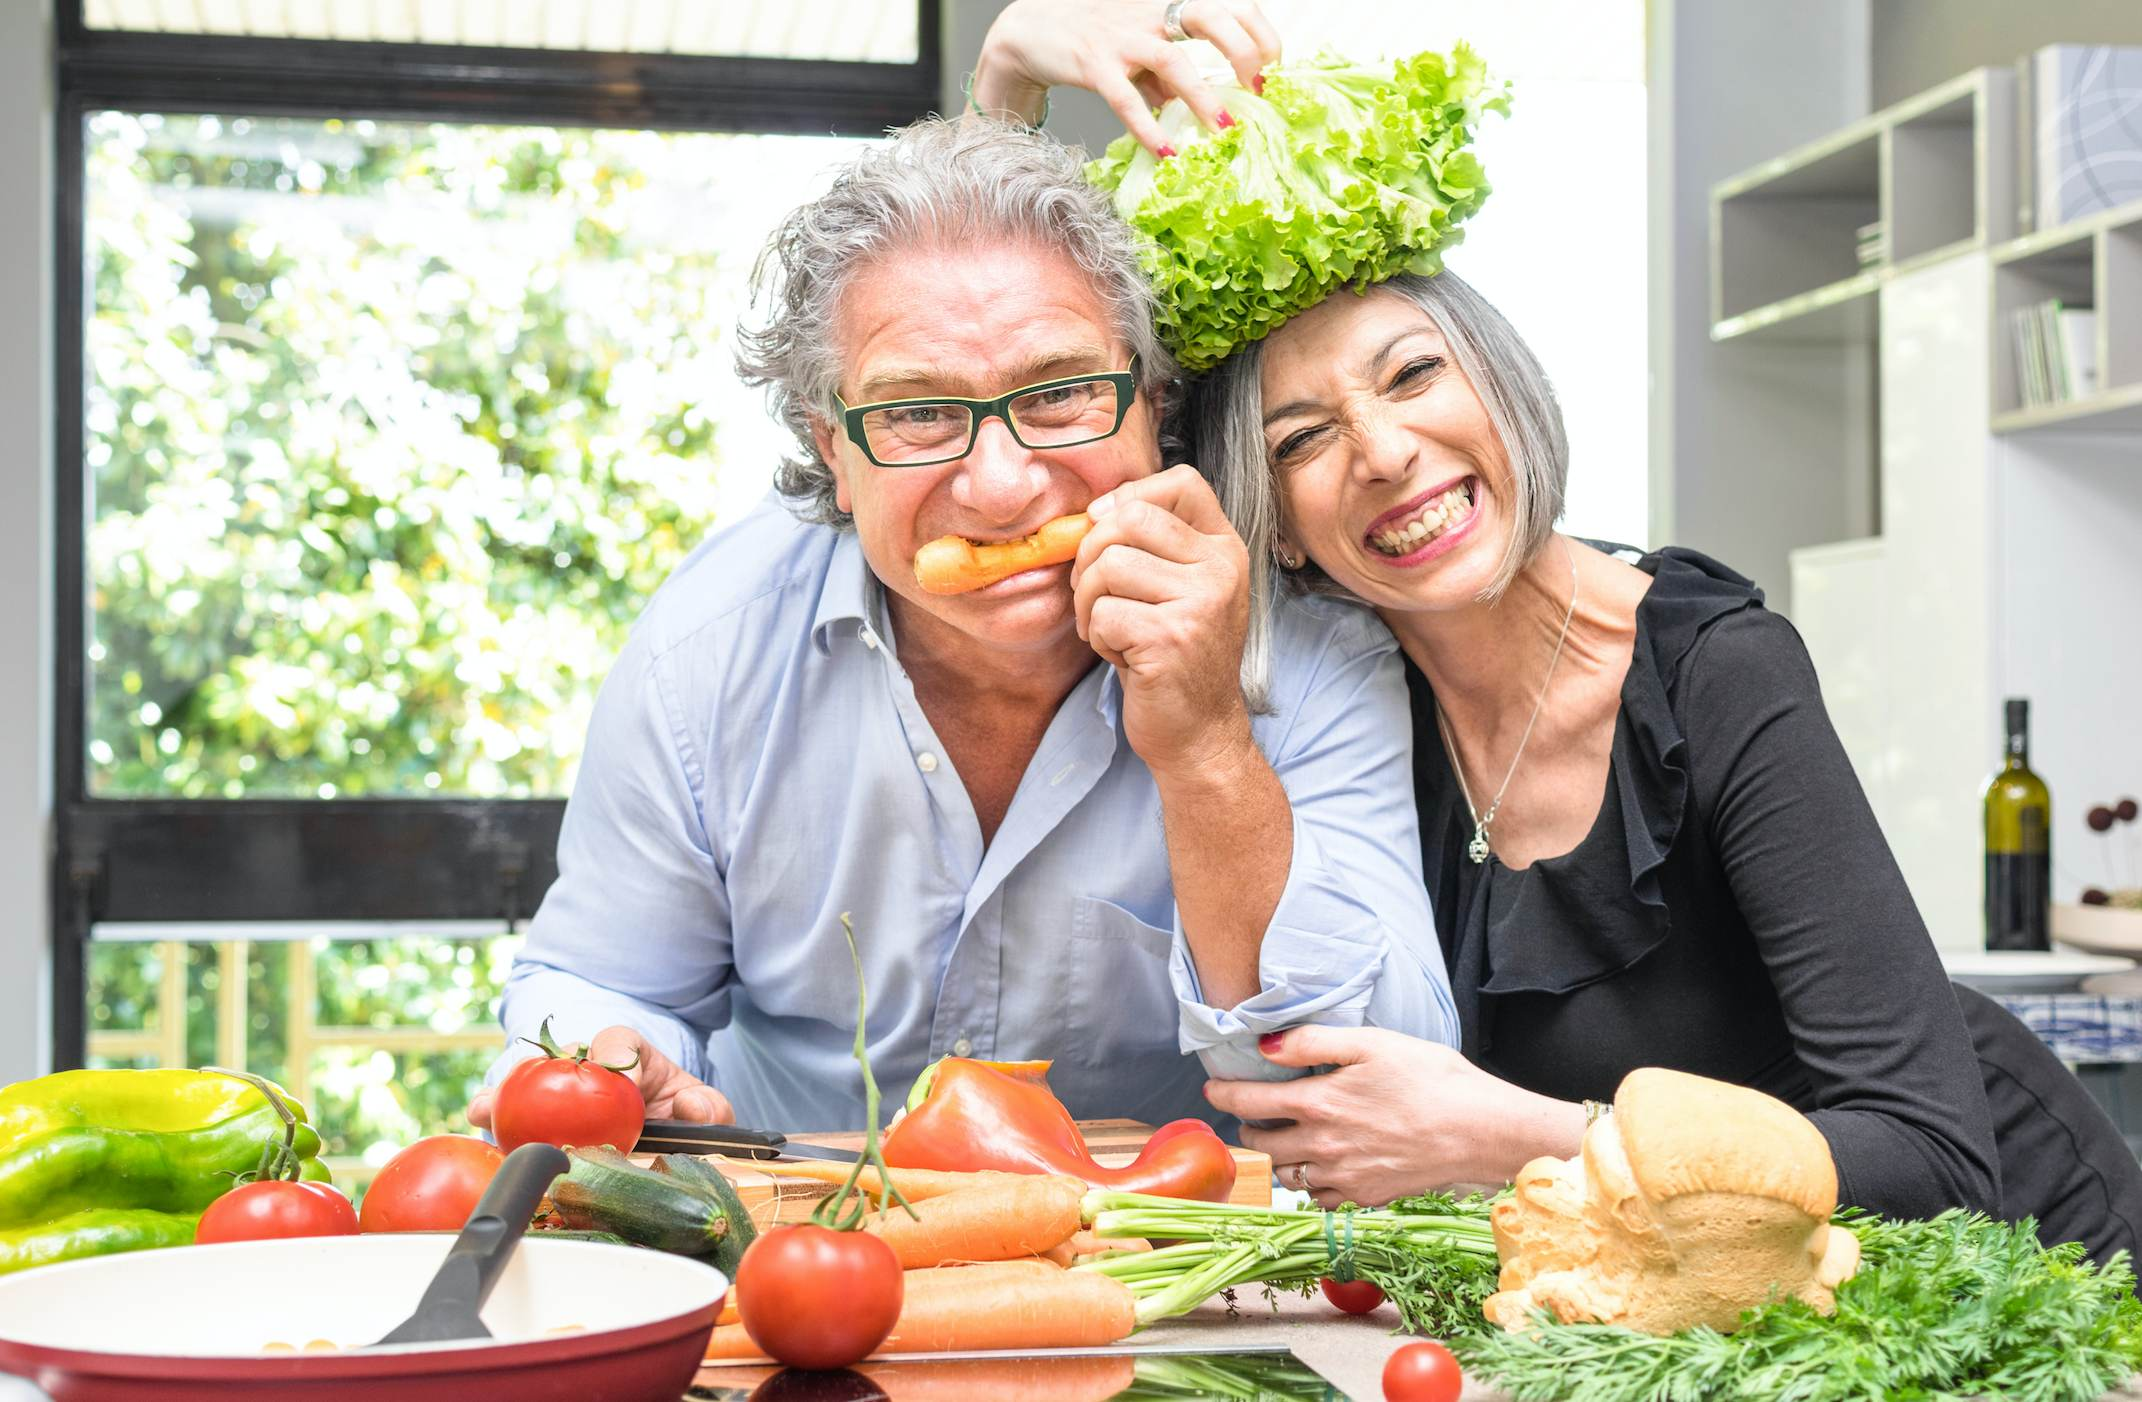 An old couple playing with vegetables